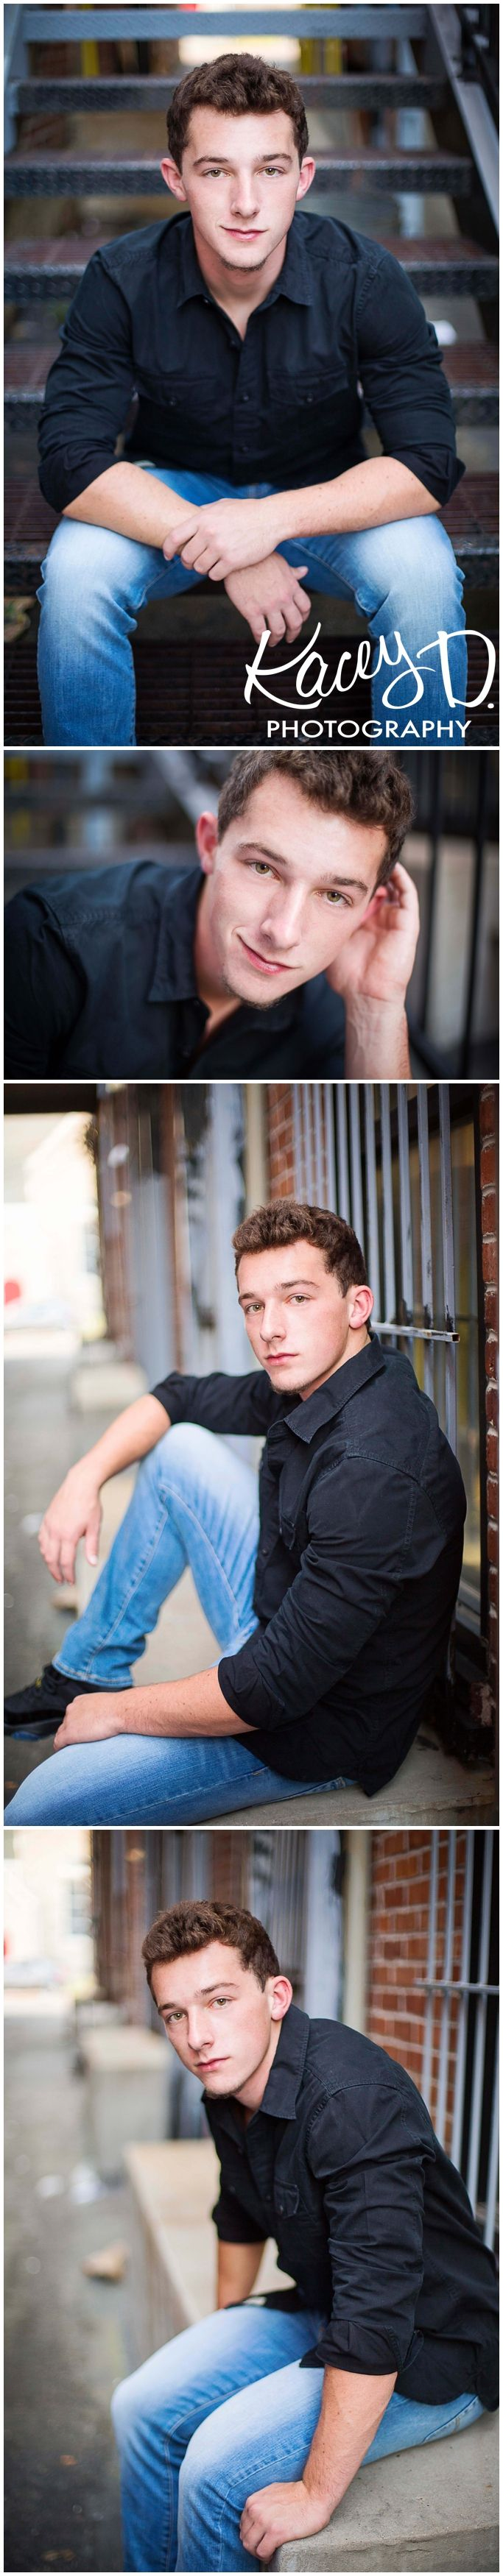 Senior Picture Ideas Downtown Posing Guys and Boys